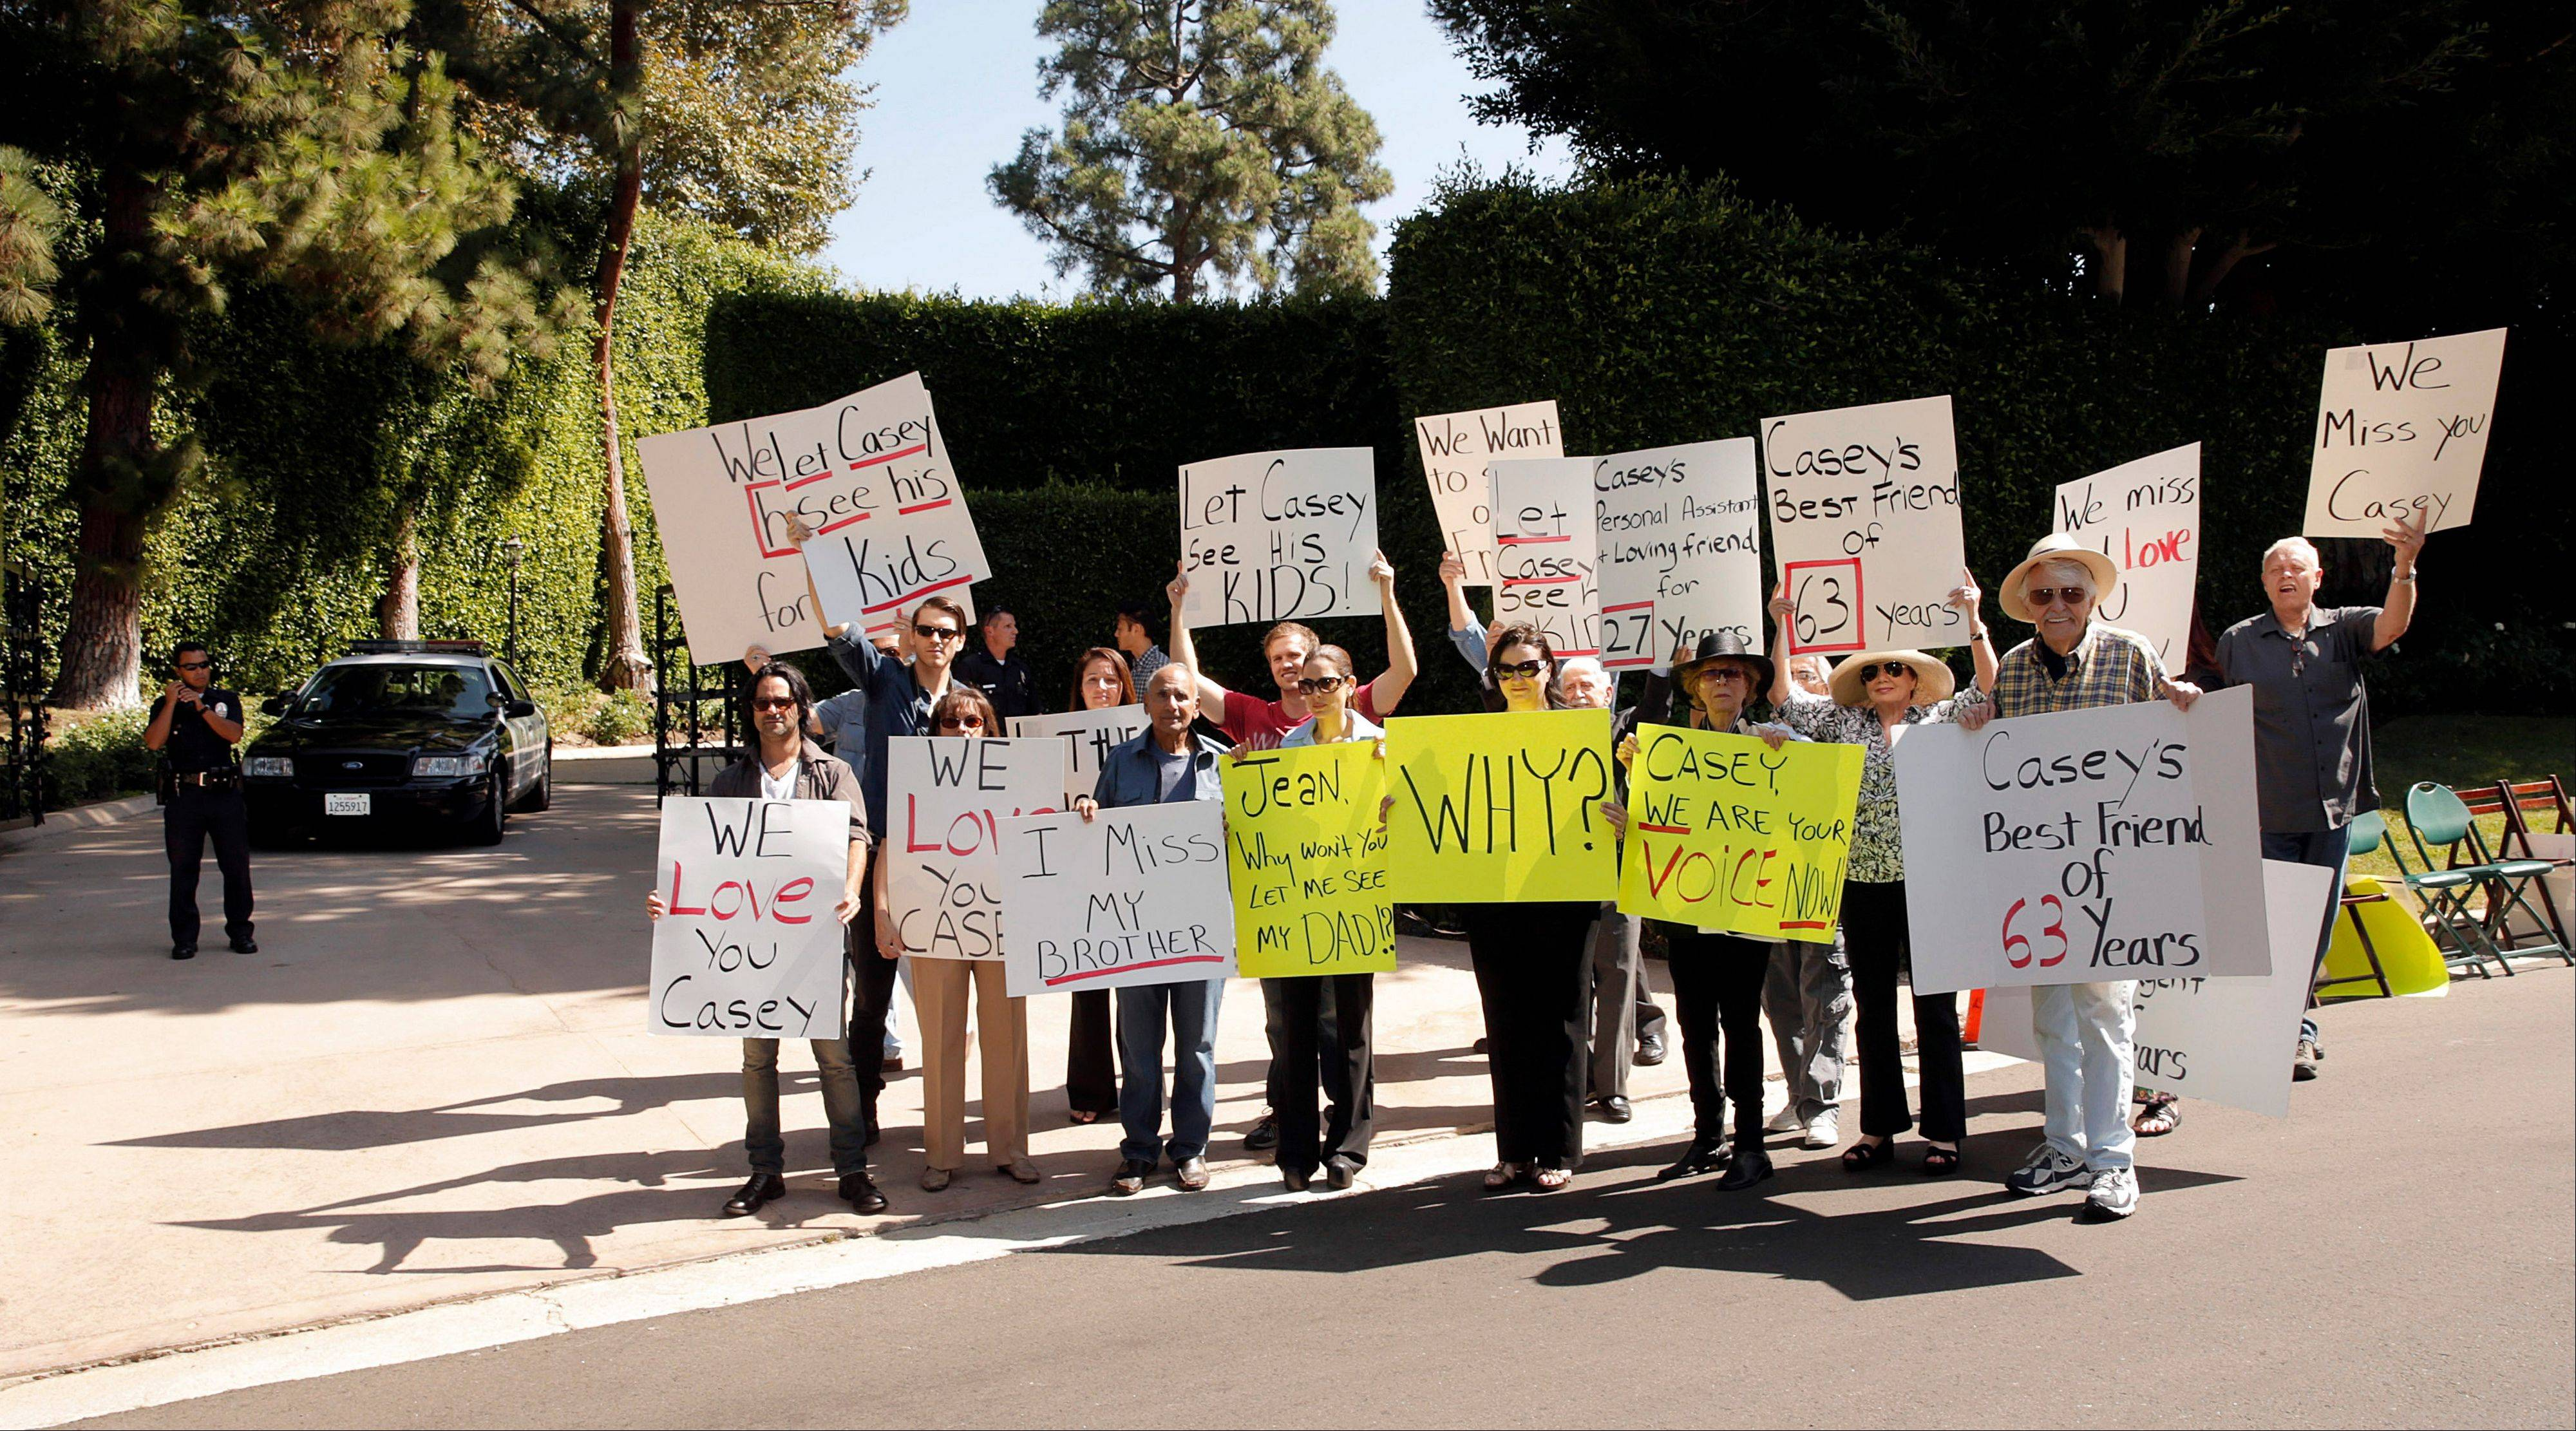 Friends and family of veteran radio personality Casey Kasem stage a protest outside his home in Beverly Hills, Calif. Kasem's children from a former marriage, his brother and friends who want to see him have been denied any contact with him by his current wife, Jean Kasem. The three adult children of the radio host have filed a legal petition to gain control of his health care.